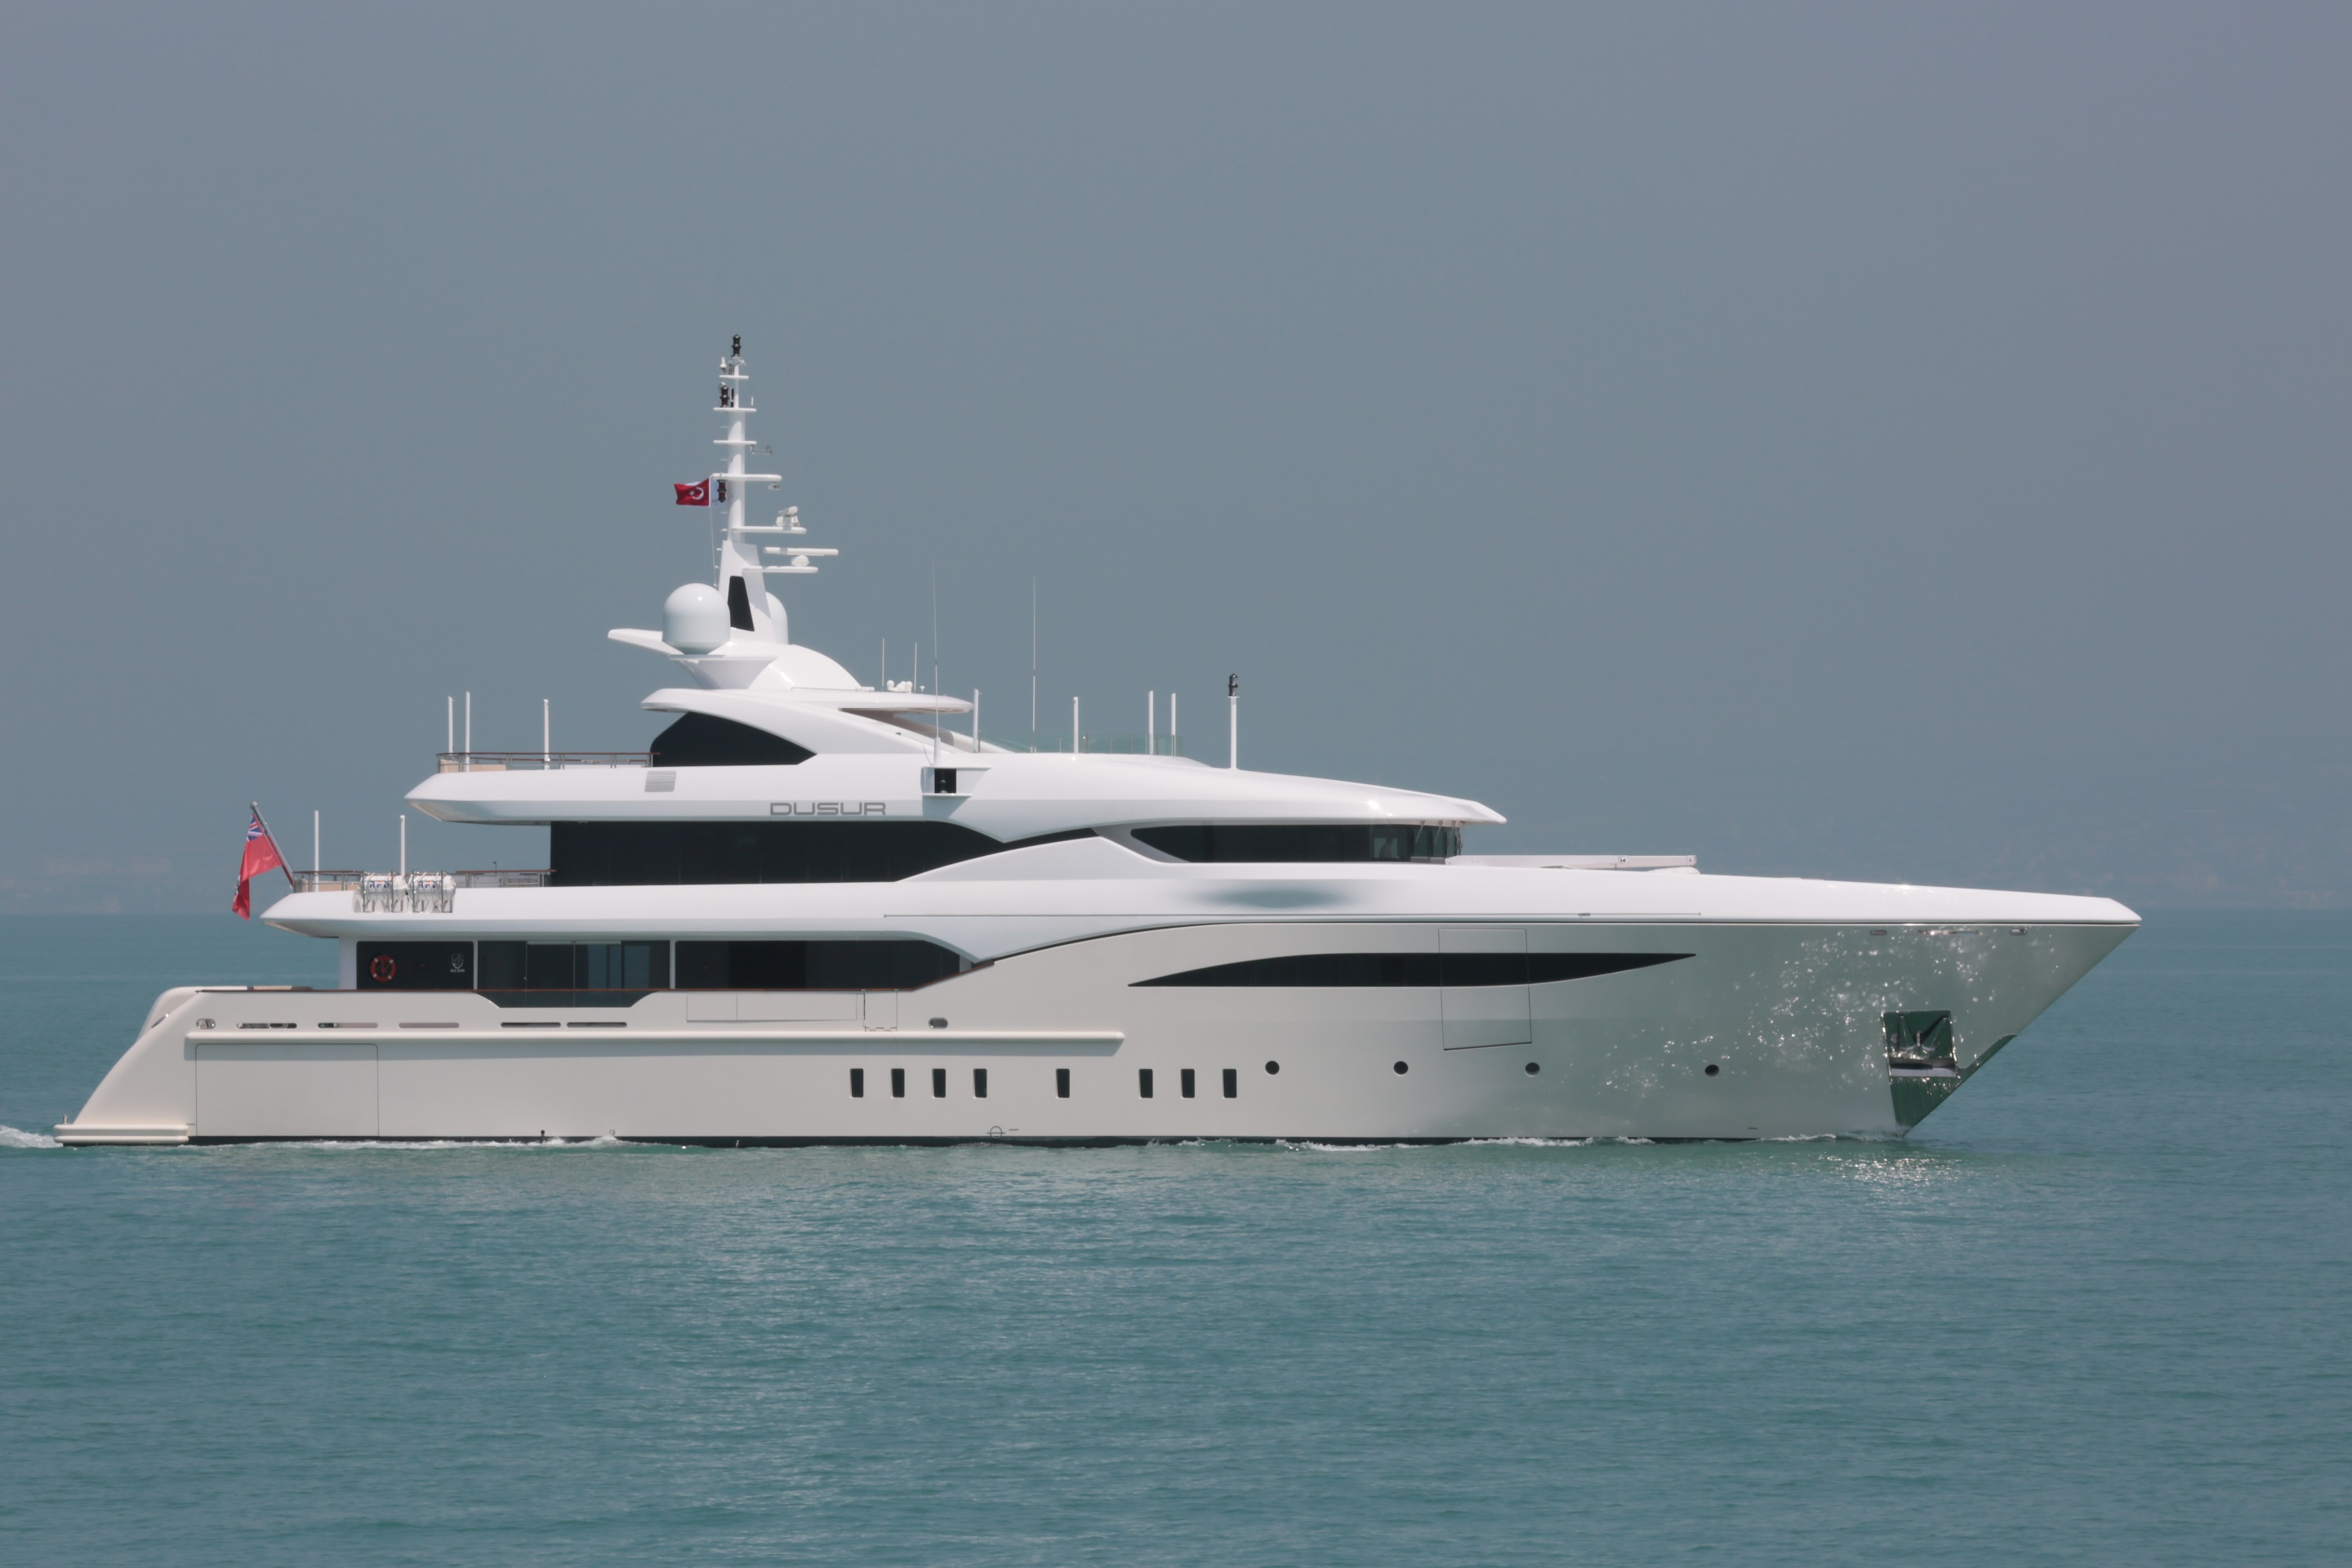 Luxury Motor Yacht Dusur Side View Yacht Charter